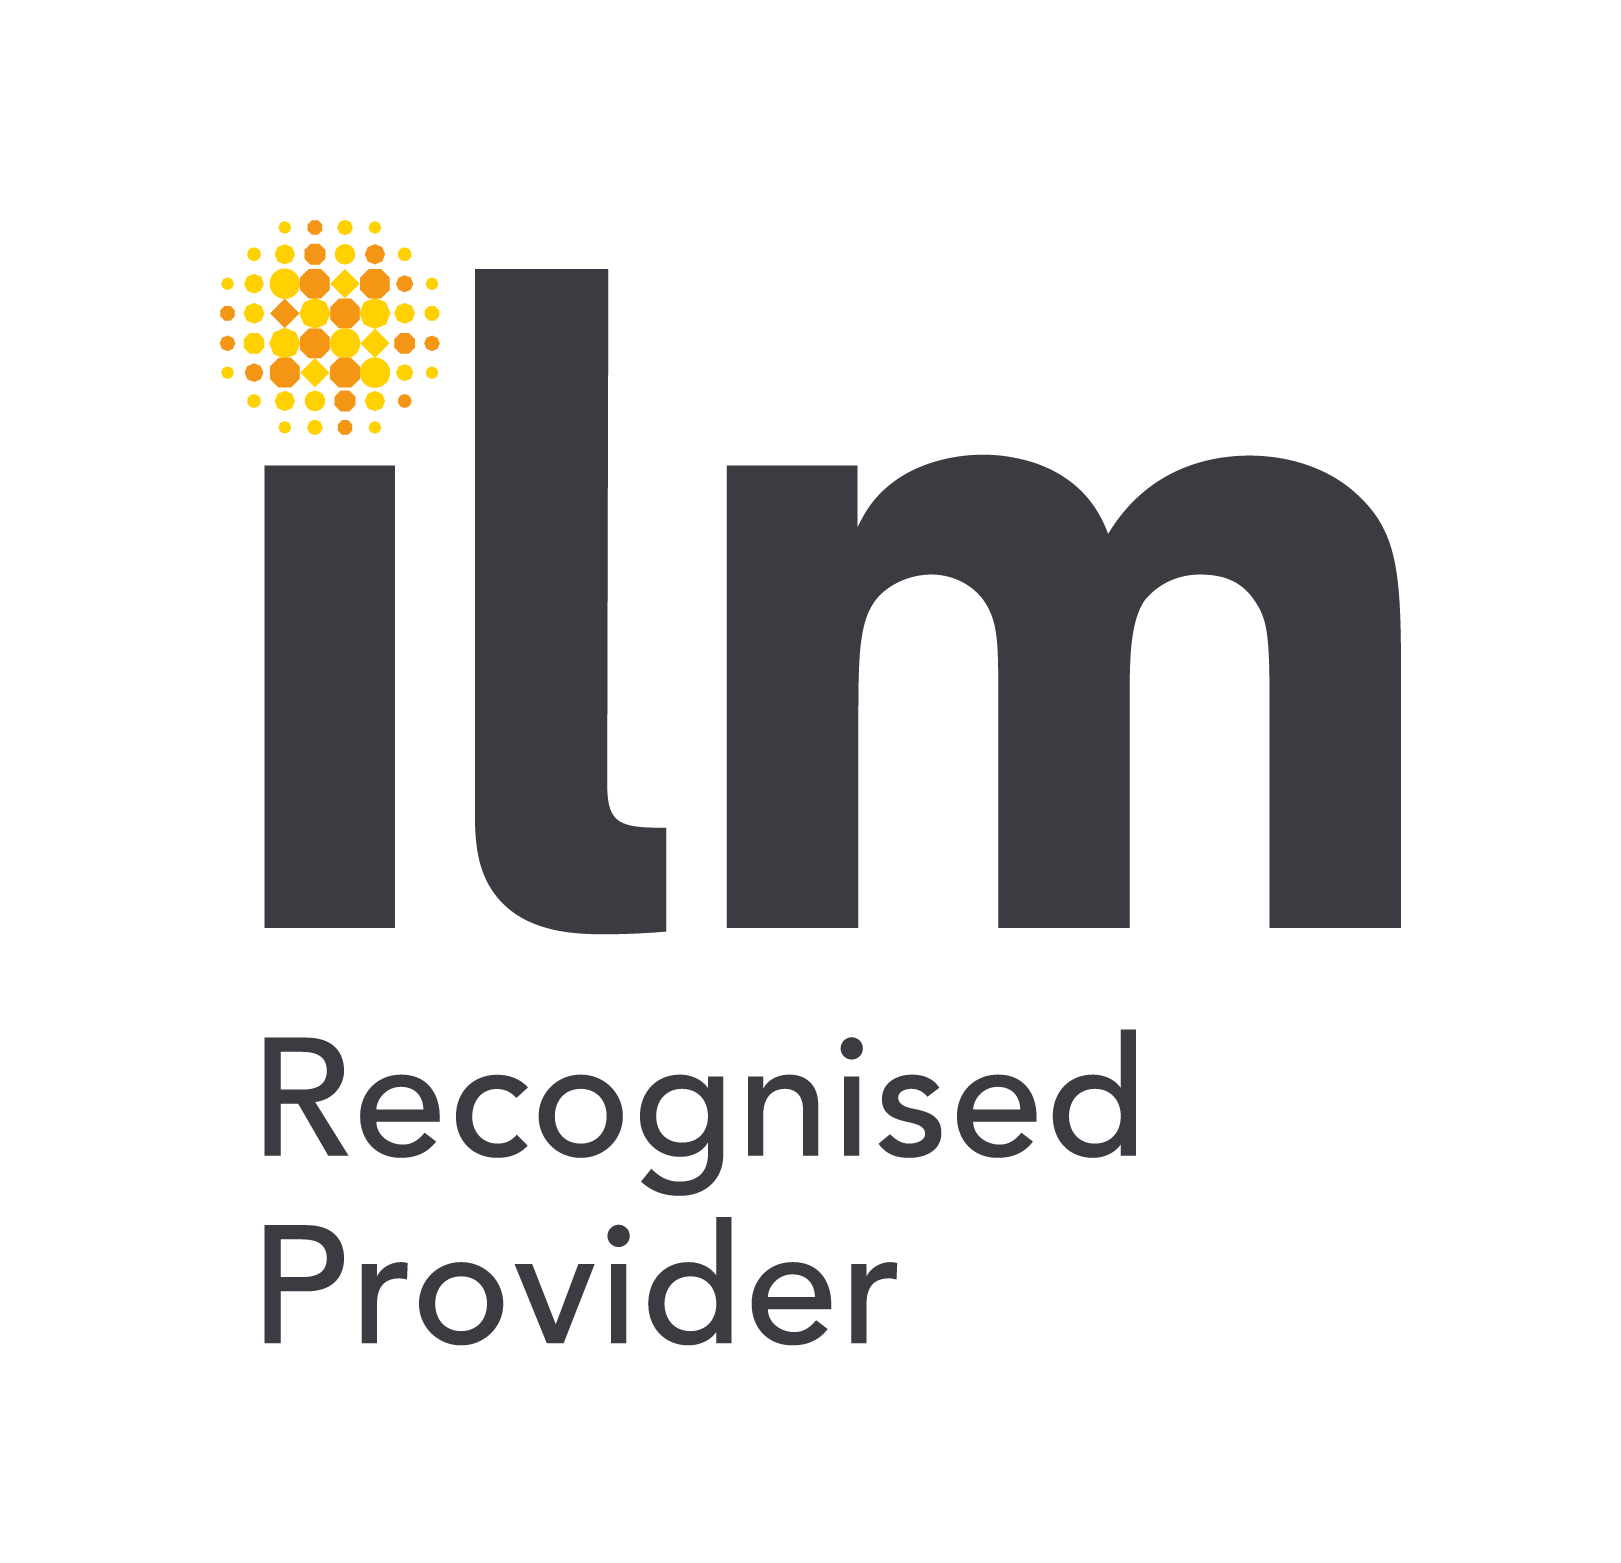 Creative Leadership for Innovation, Contented recognised by ILM, former institute of leadership and management